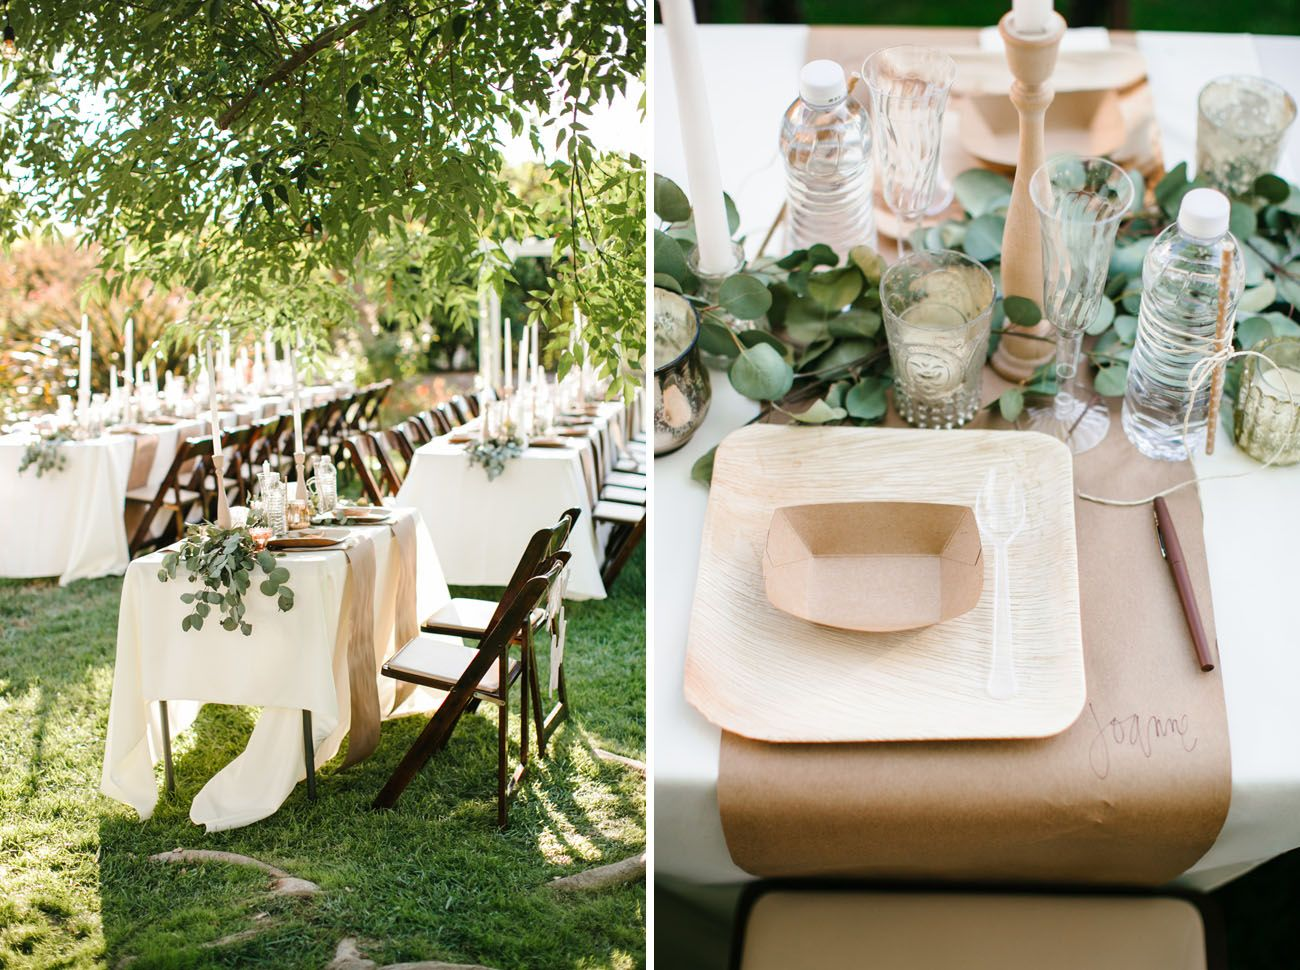 Disposable tableware. Maybe the boat for salad and apps and plate for dinner. & Romantic Relaxed Backyard Wedding: Heidi + Joshua | Pinterest ...